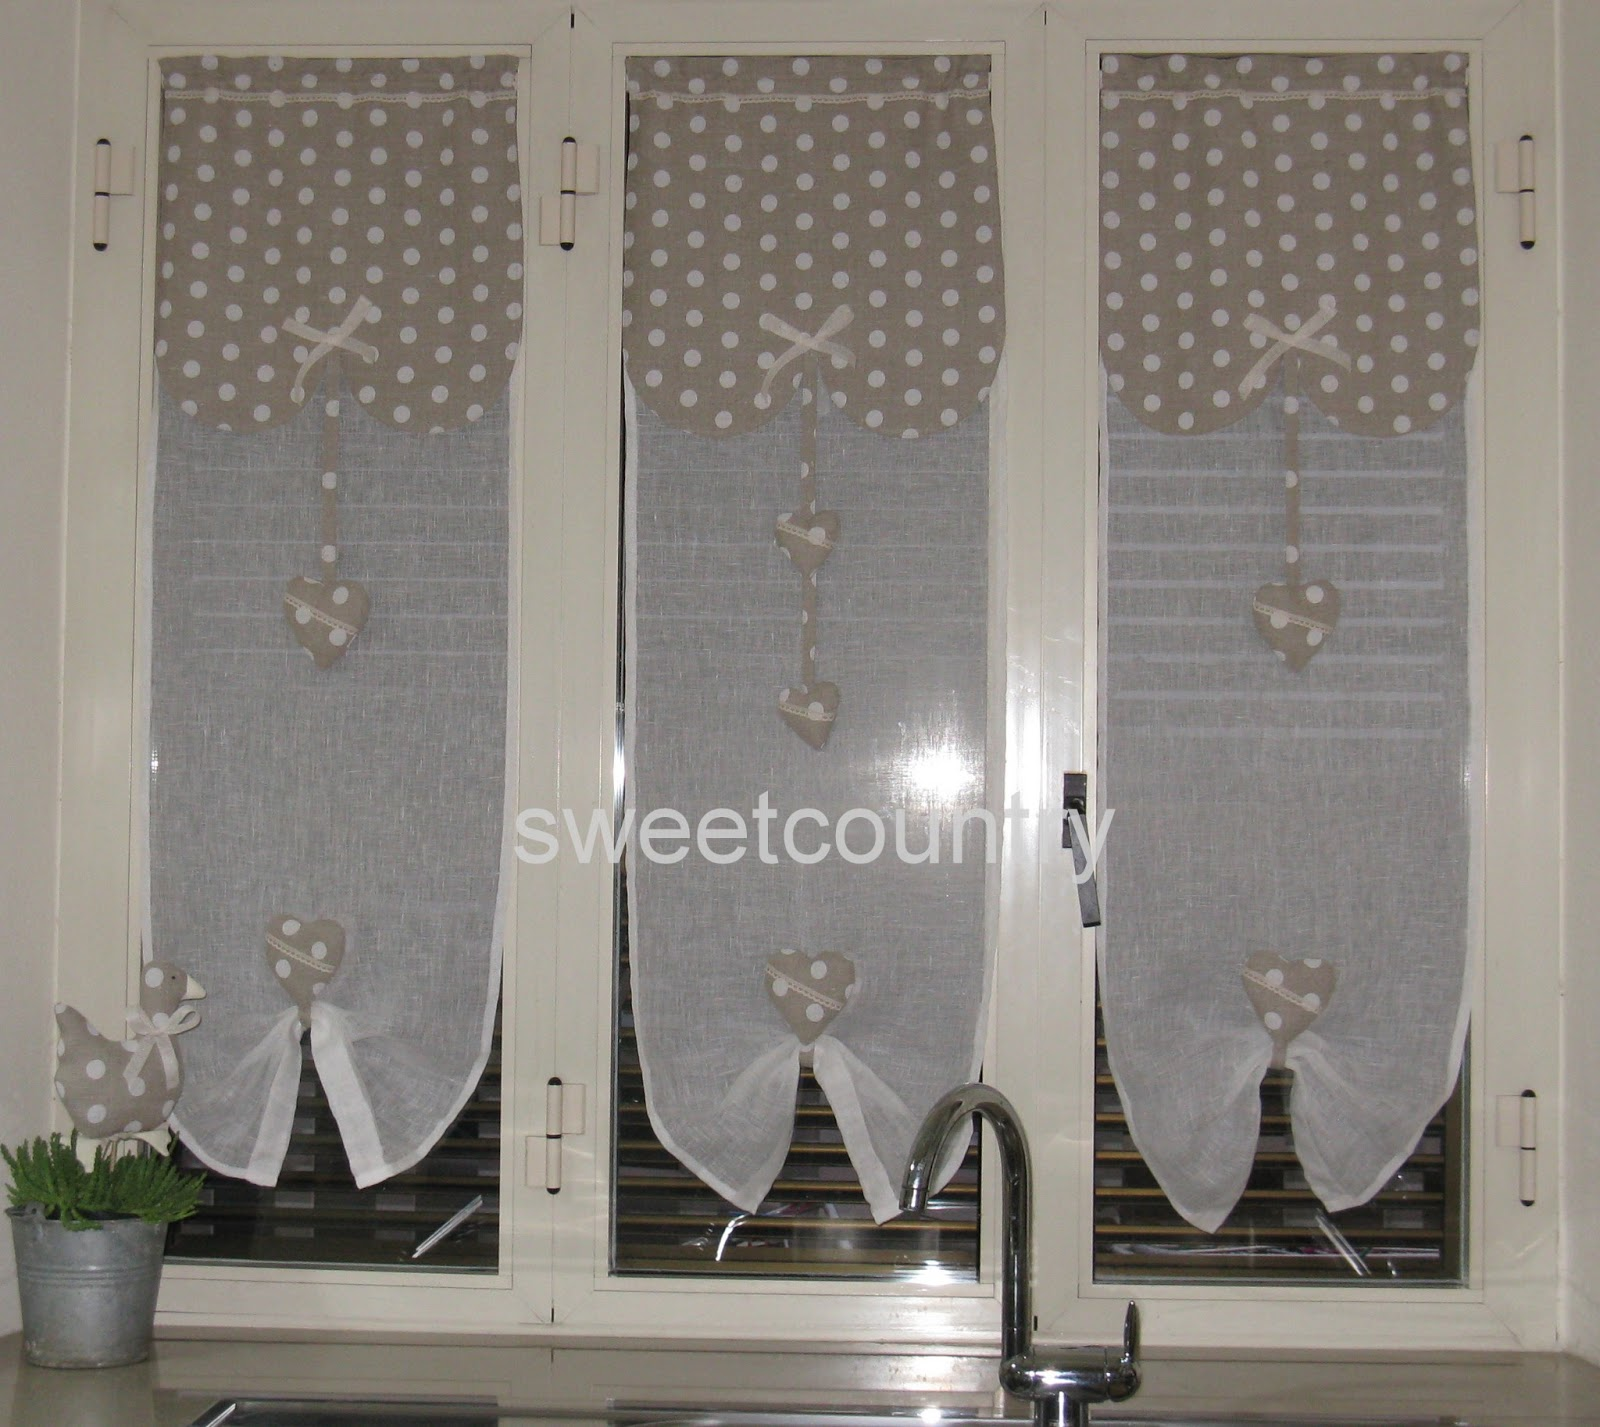 Sweetcountry tende country for Modelli di tende da cucina